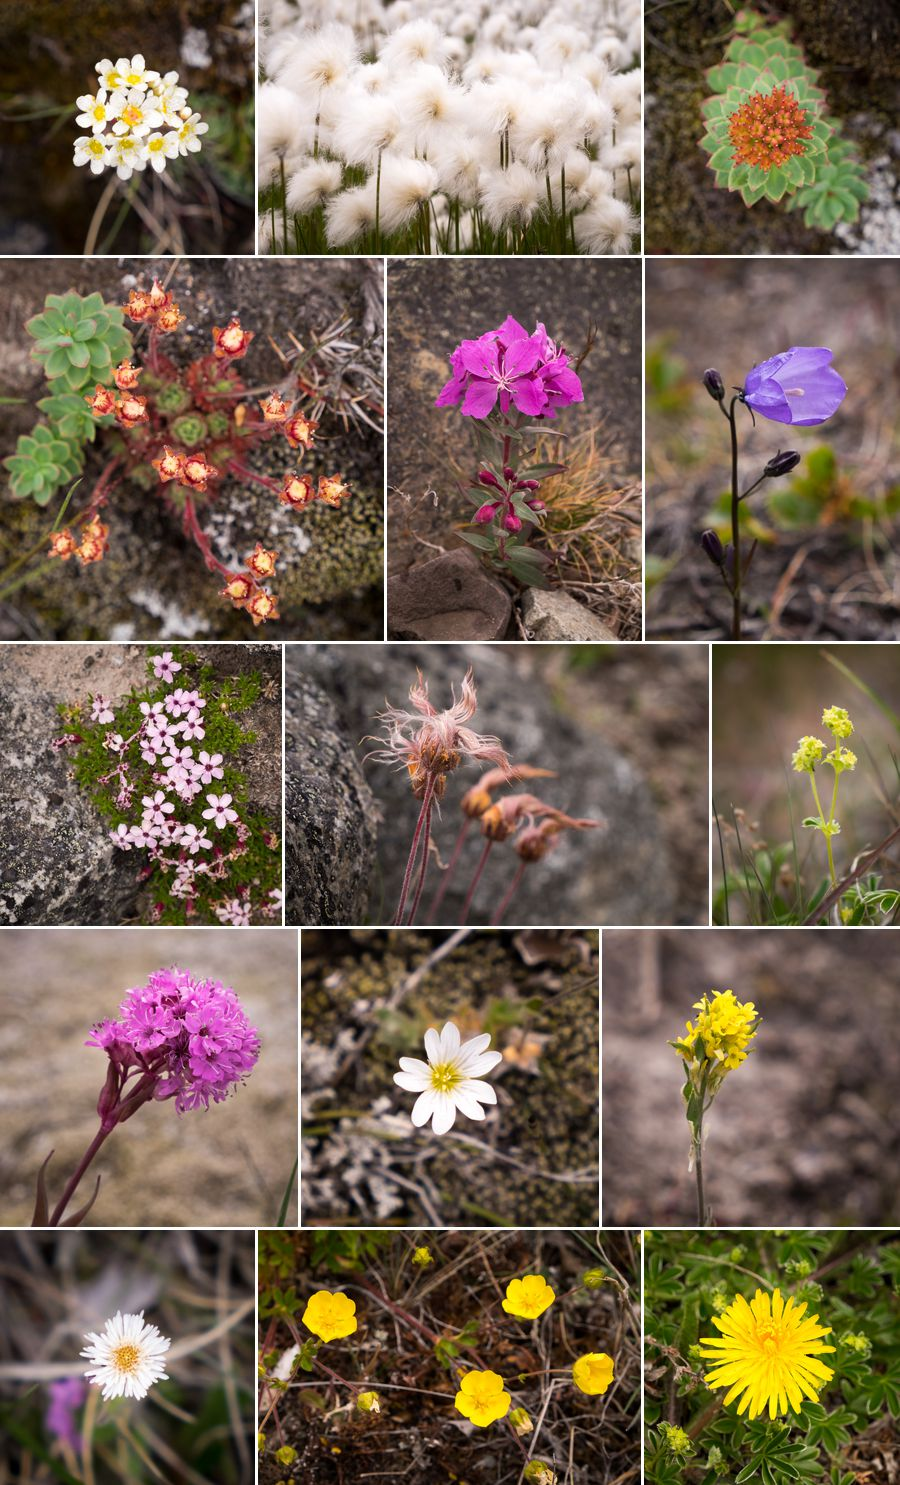 Montage of colourful Greenlandic wildflowers taken along the Ridge Hike near Narsarsuaq, South Greenland